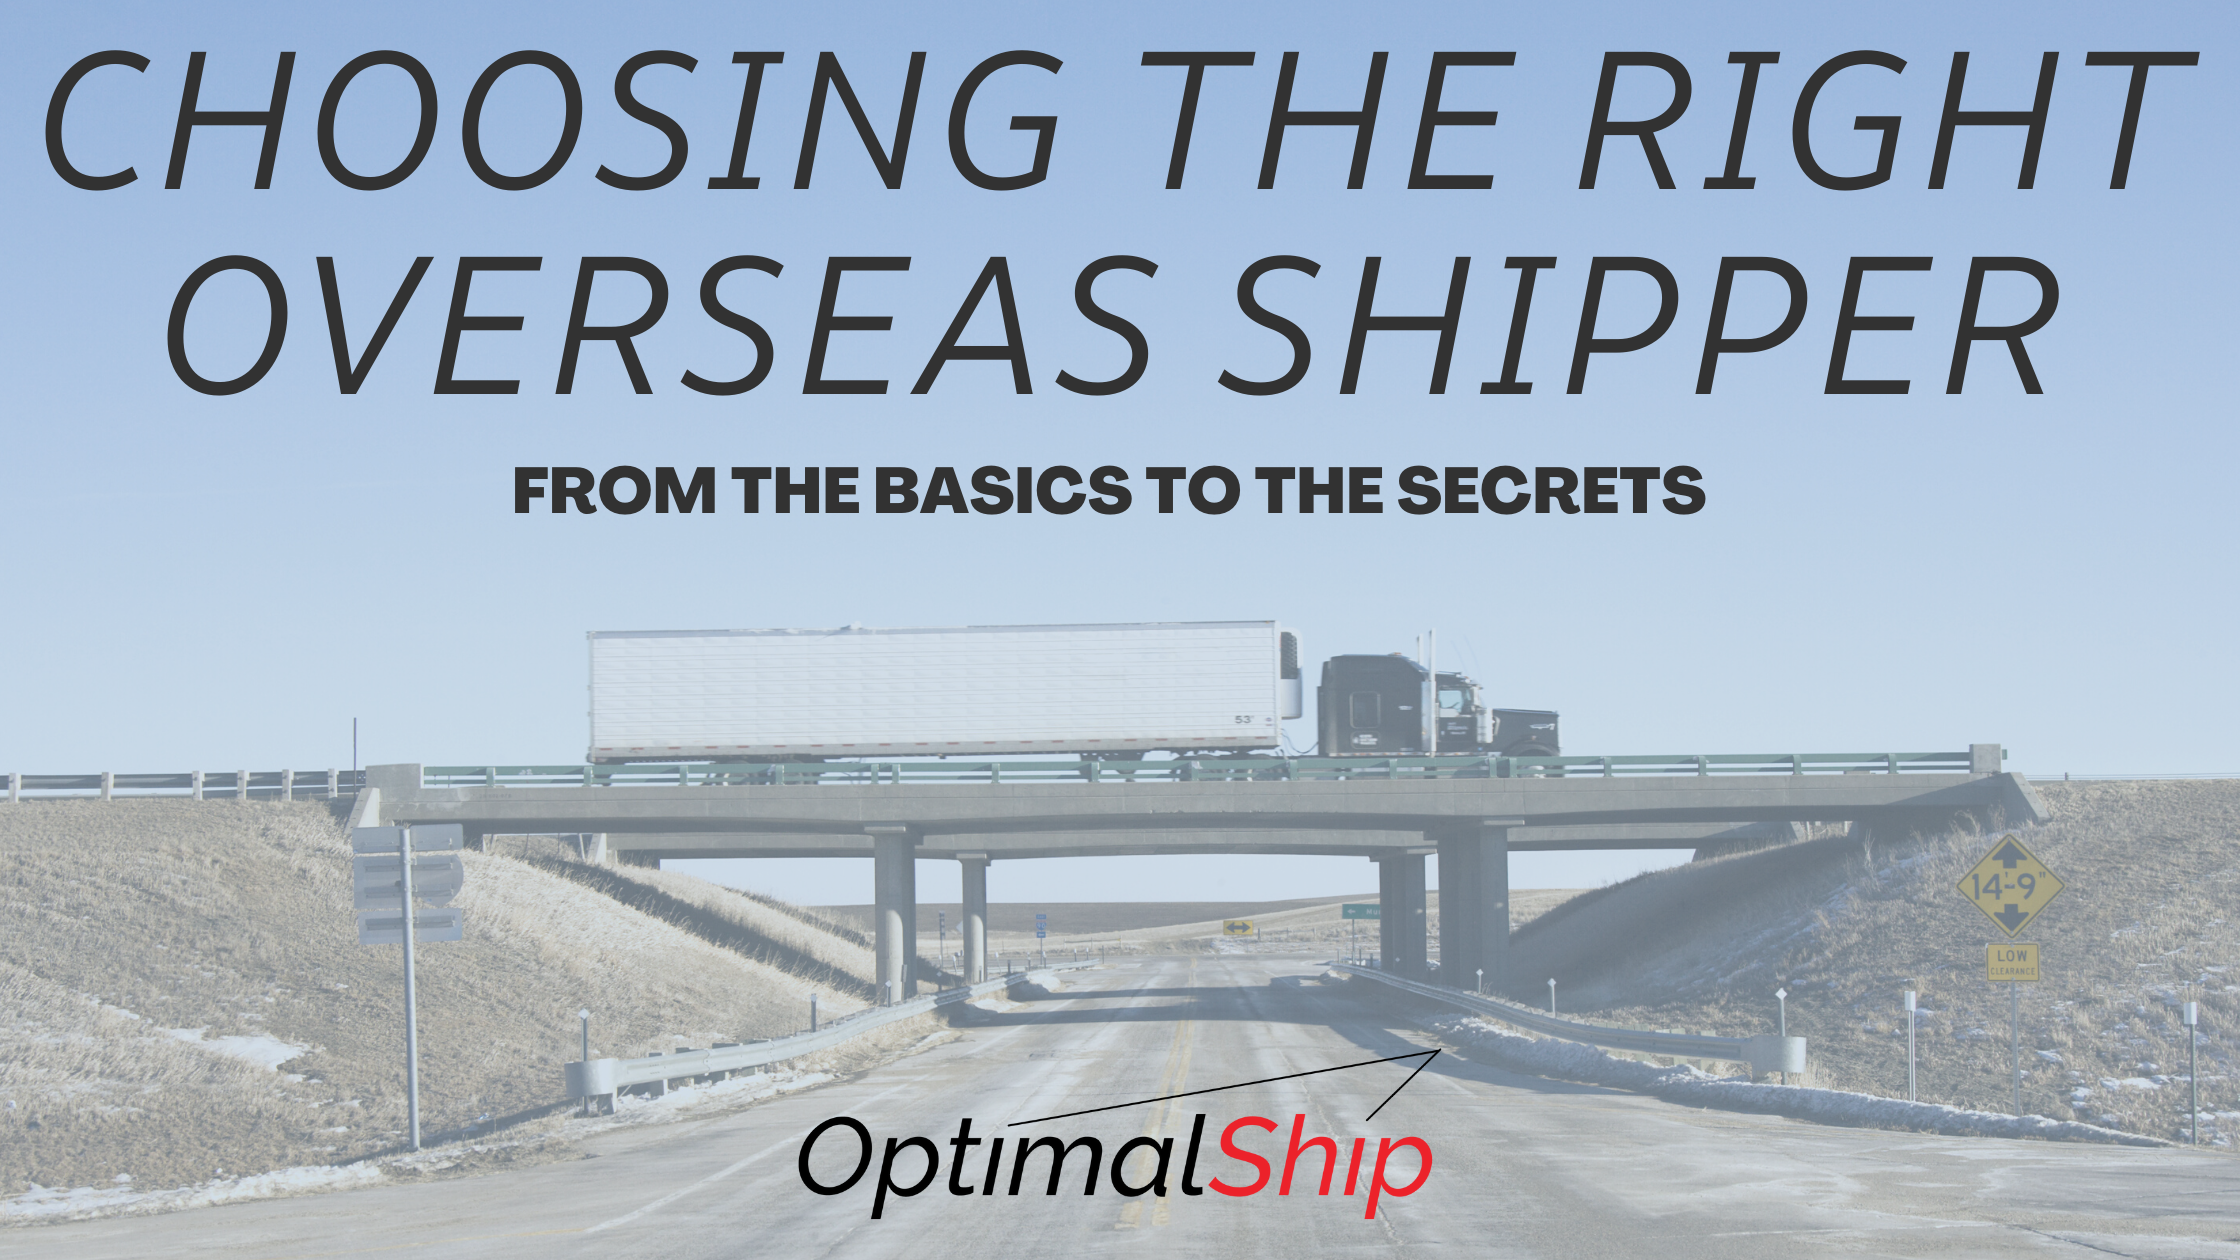 How to Choose the Best Overseas Shippers